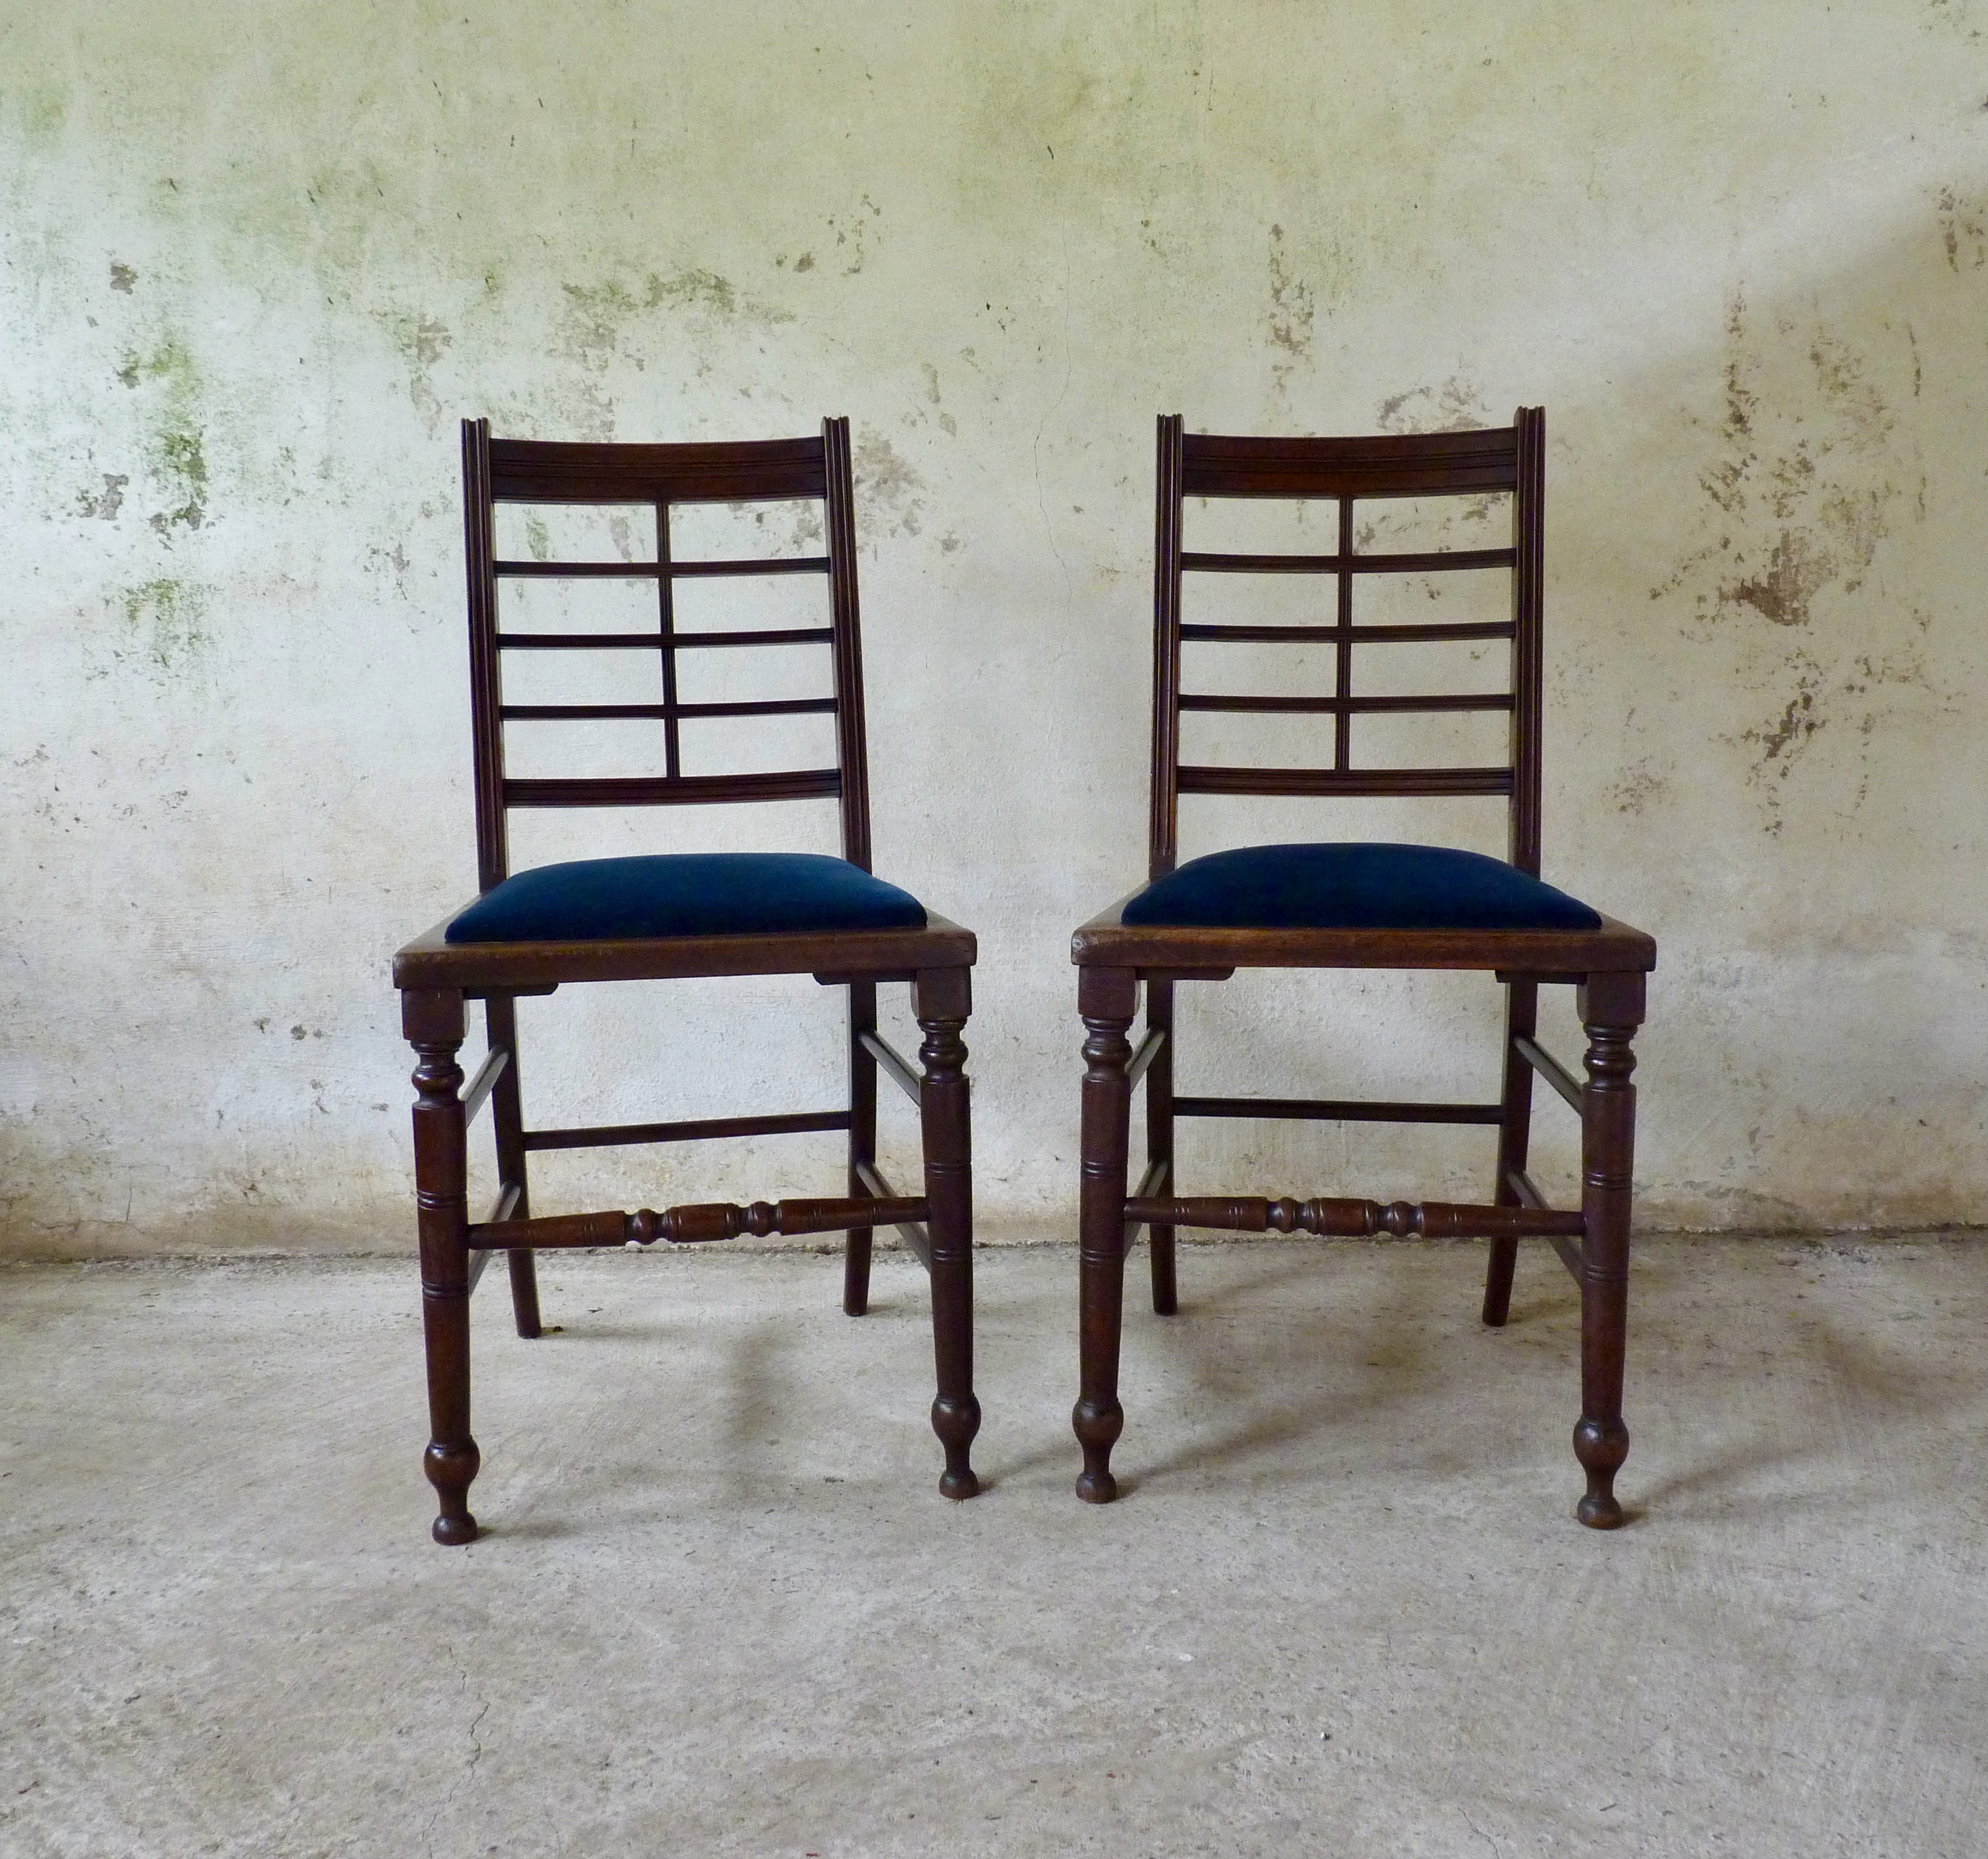 Pair of aesthetic movement walnut chairs